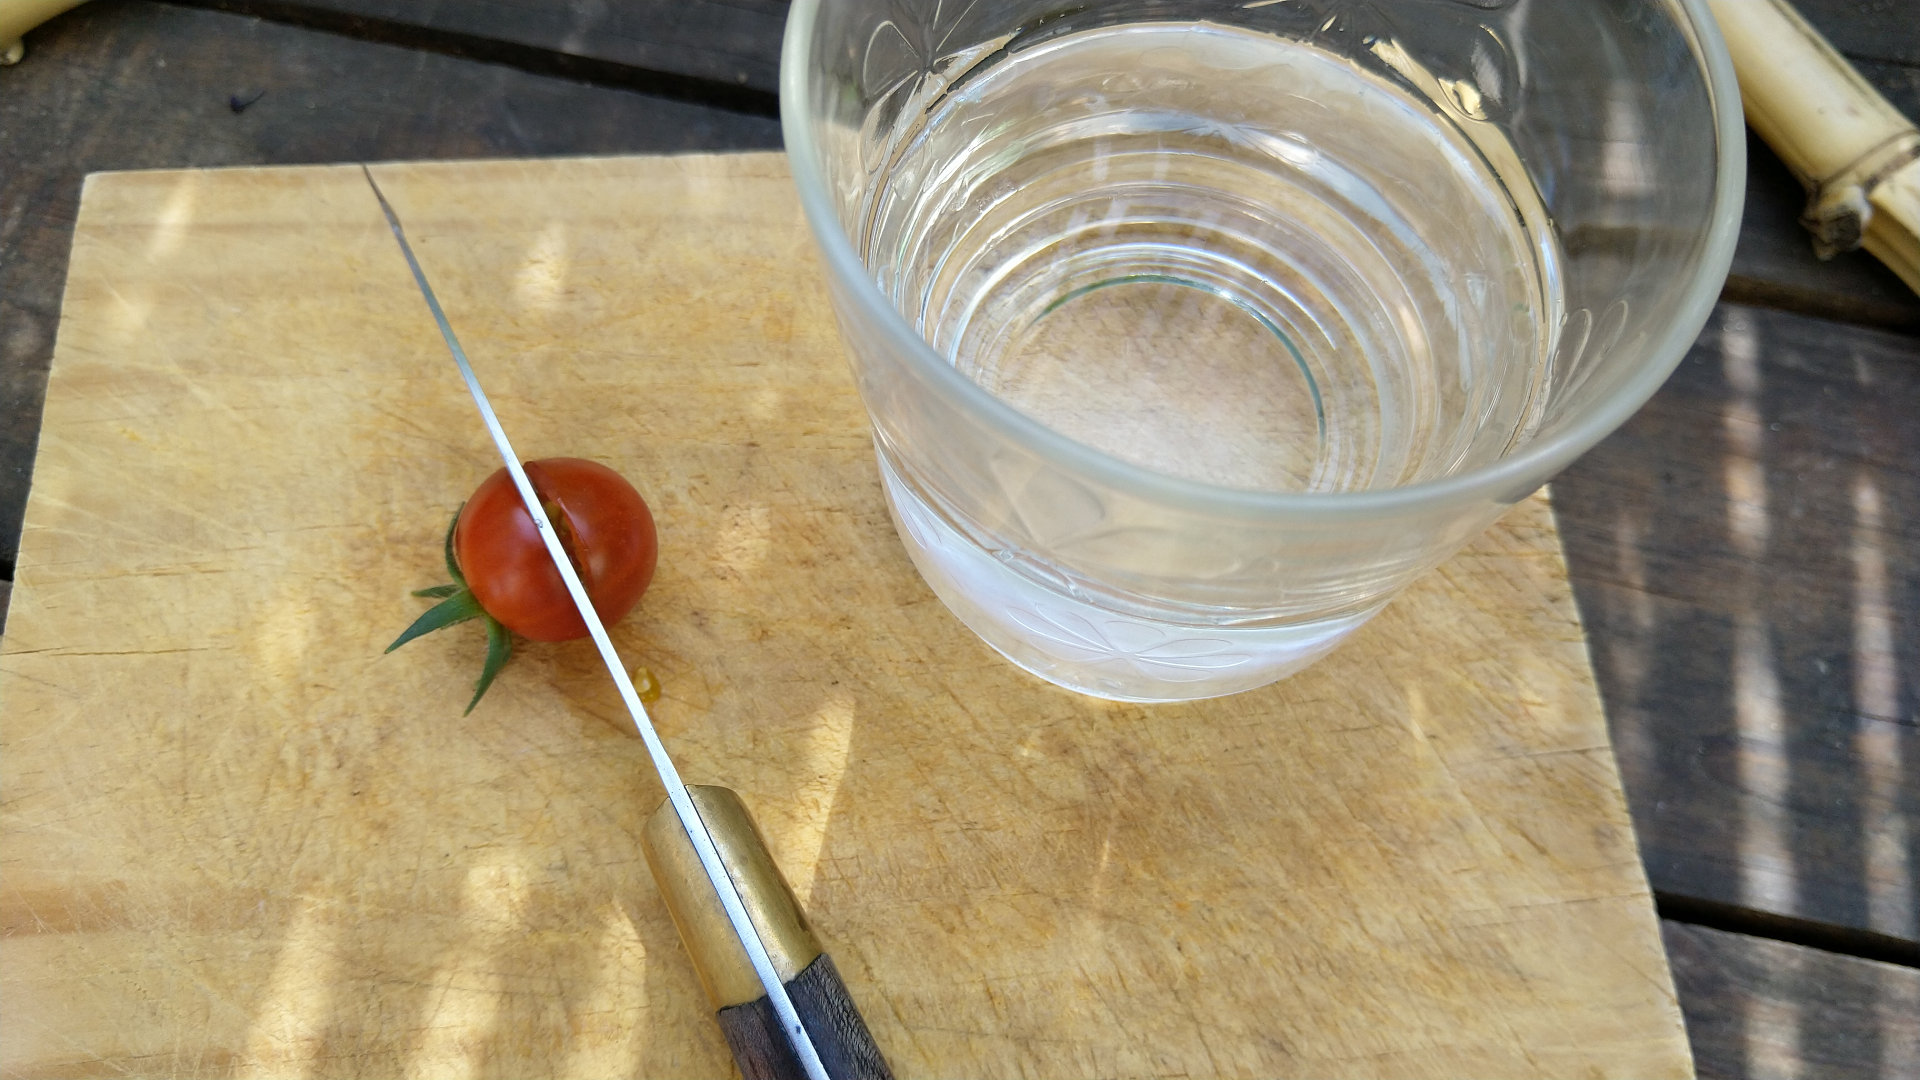 recolte-graine-tomate-coupe-couteau